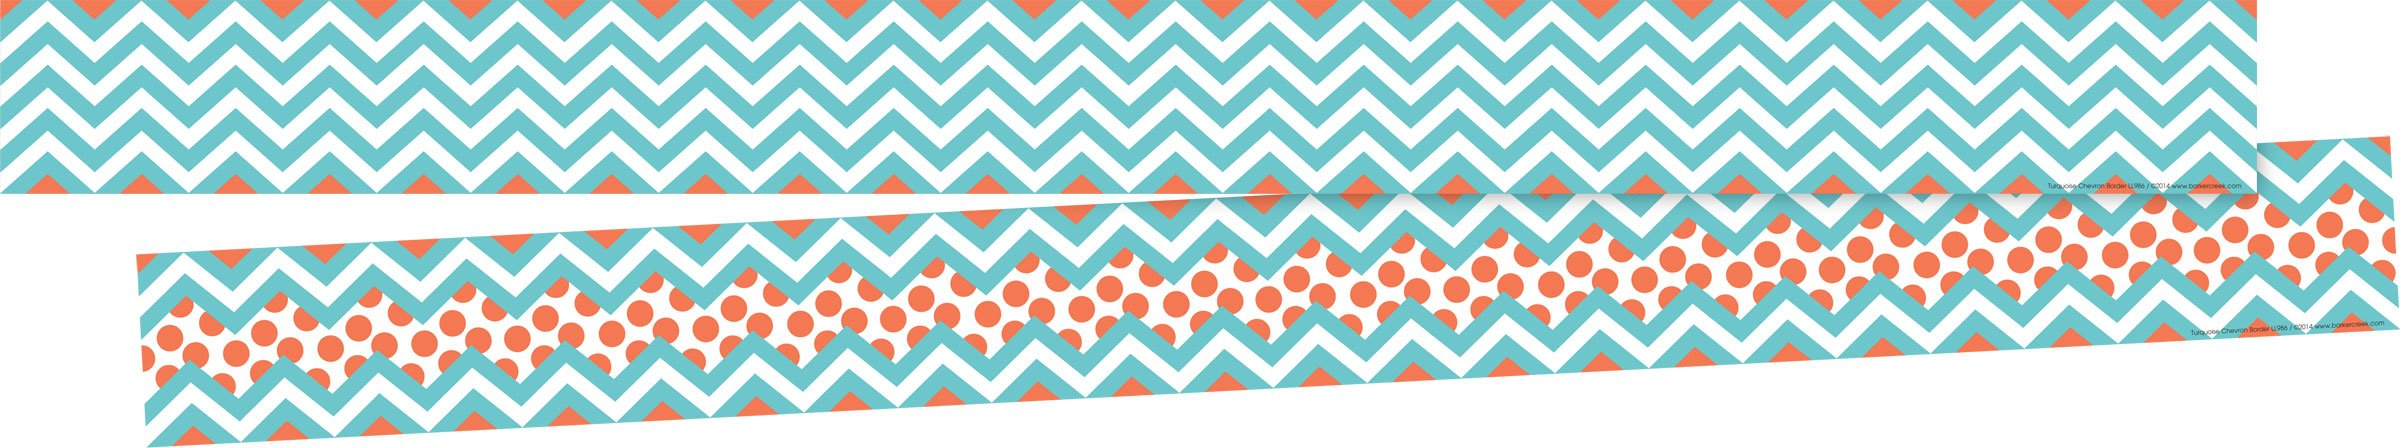 Barker Creek Double-Sided Border 2 pack - Chevron Turquoise (BC3692)